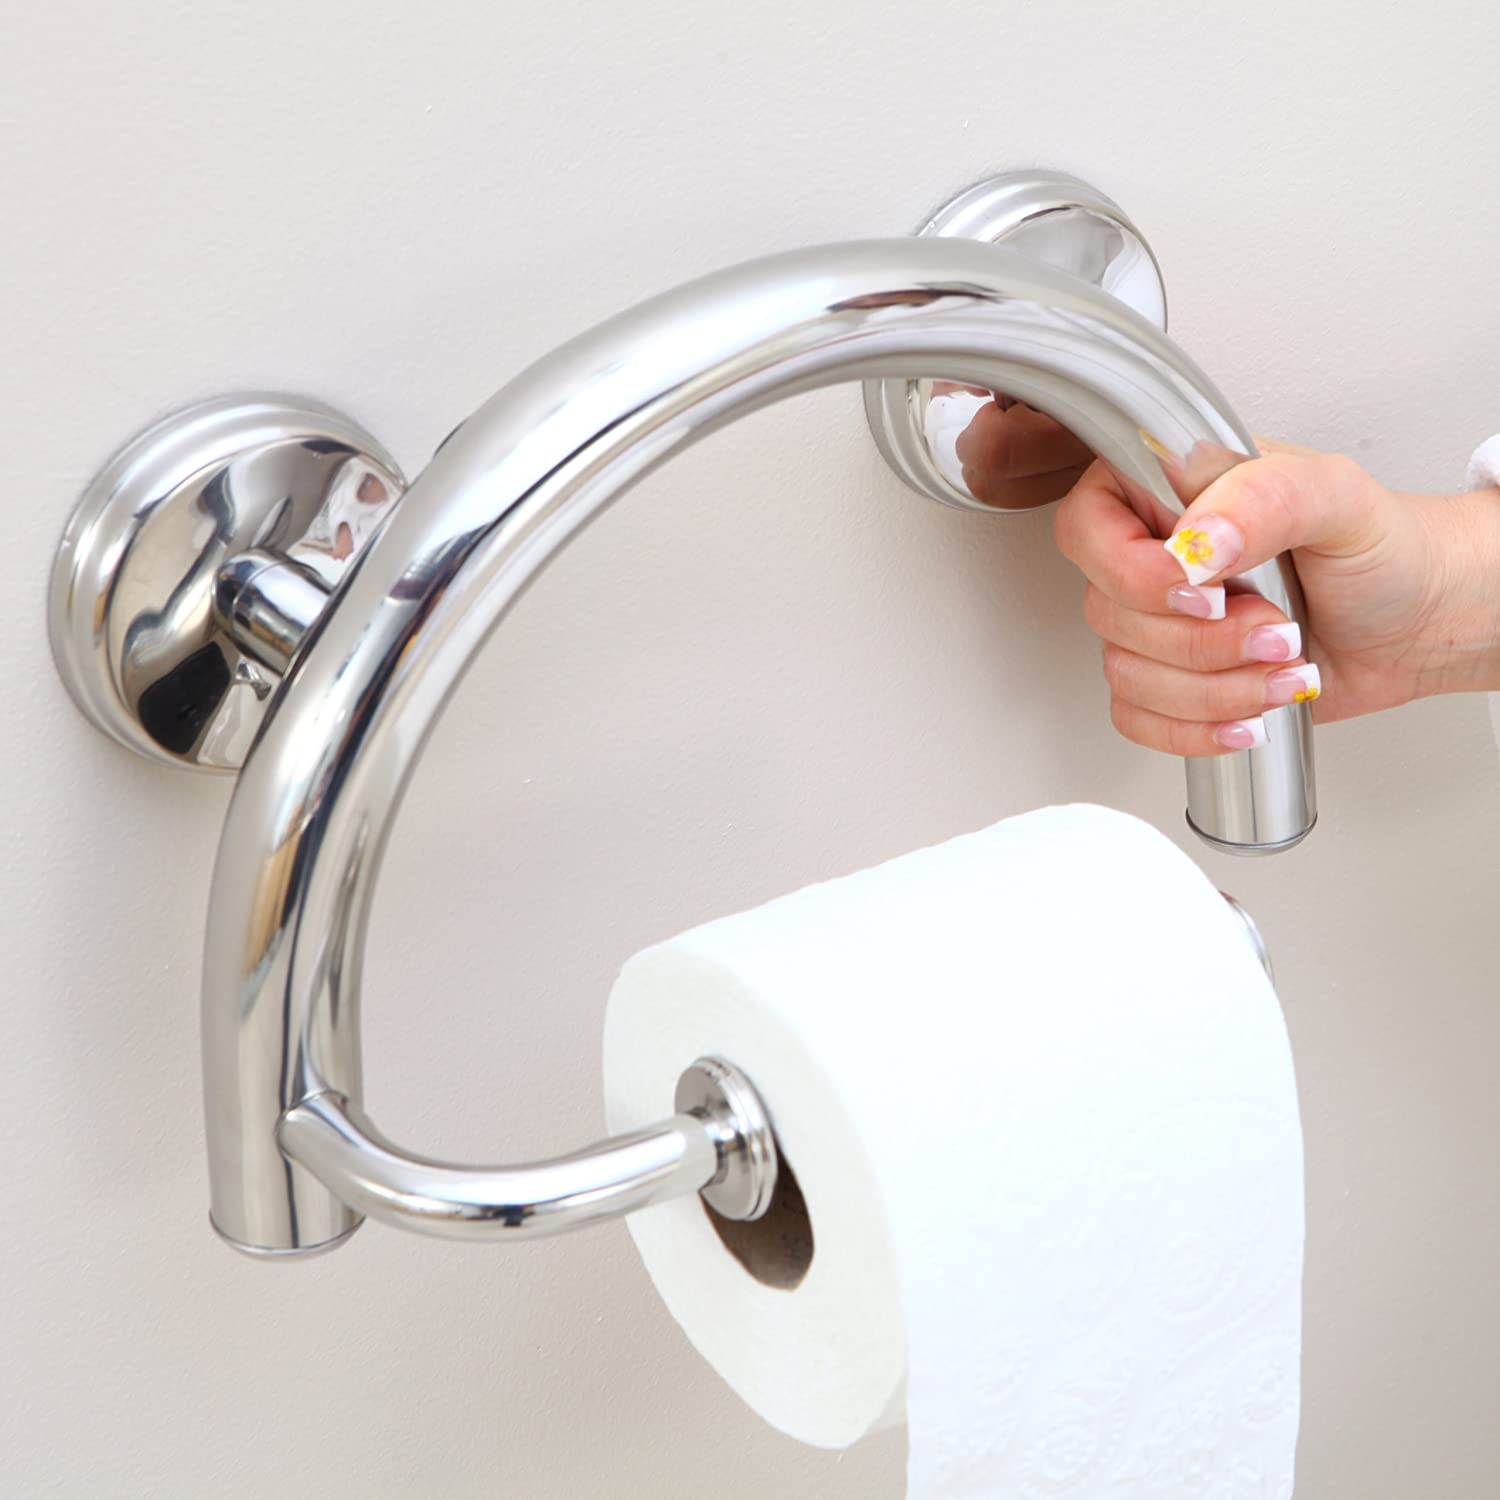 Grabcessories 61022 2-in-1 Grab Bar Toilet Paper Holder with Grips ...